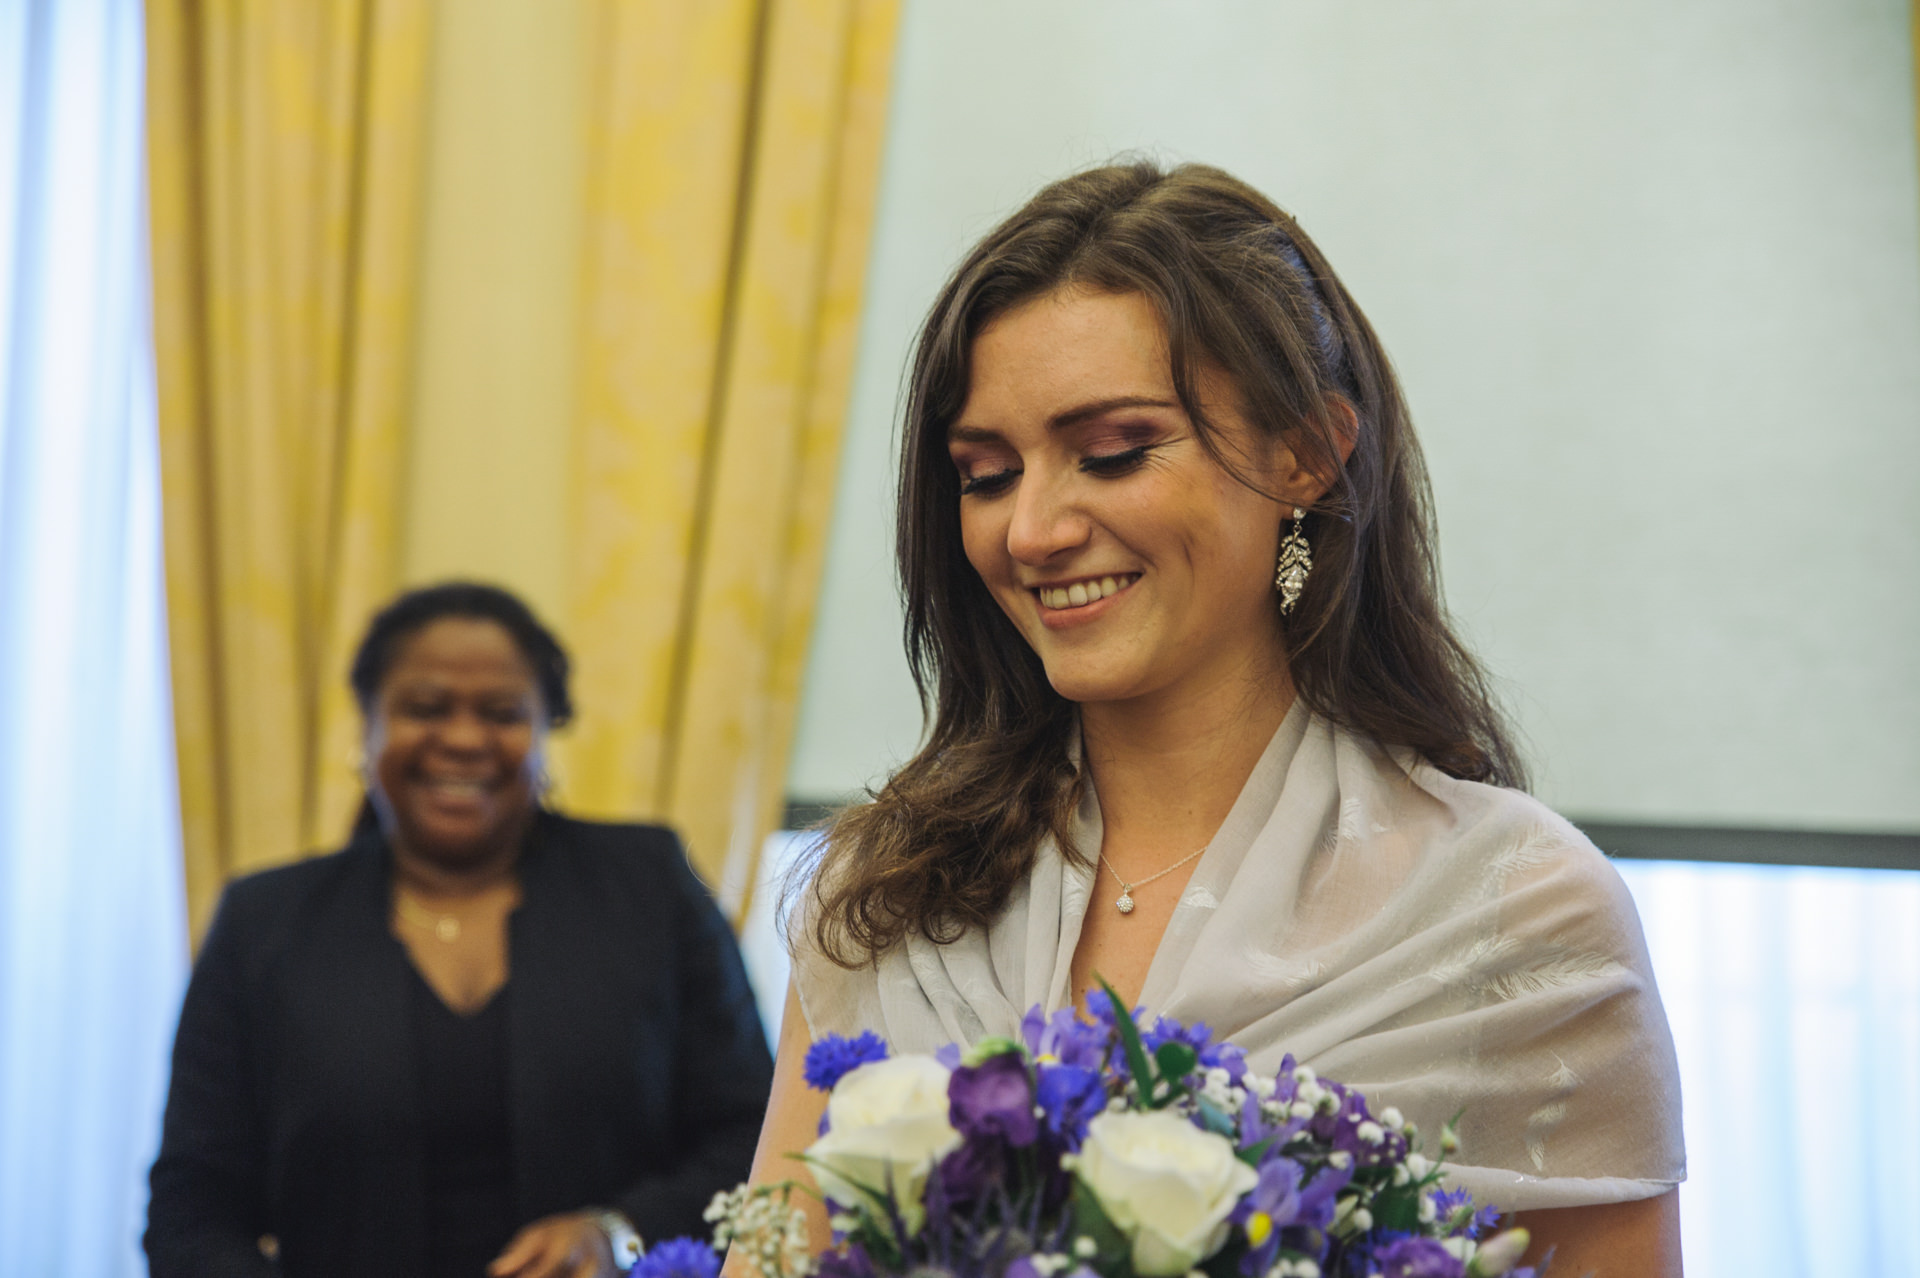 islington town hall wedding bride smiling